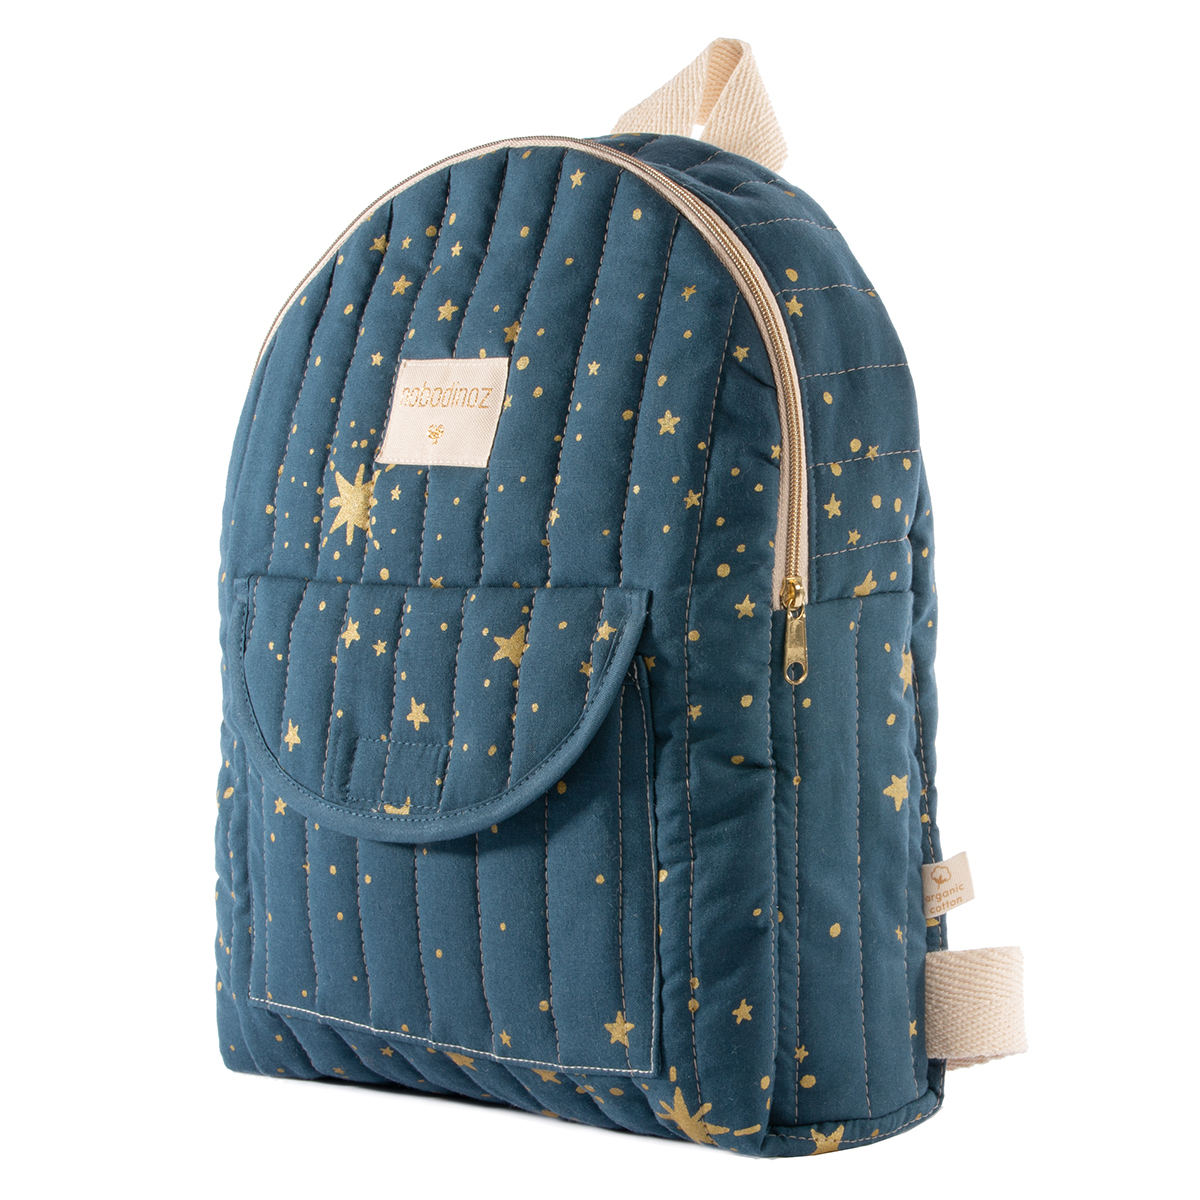 Bagagerie enfant Sac à Dos - Gold Stella & Night Blue Sac à Dos - Gold Stella & Night Blue